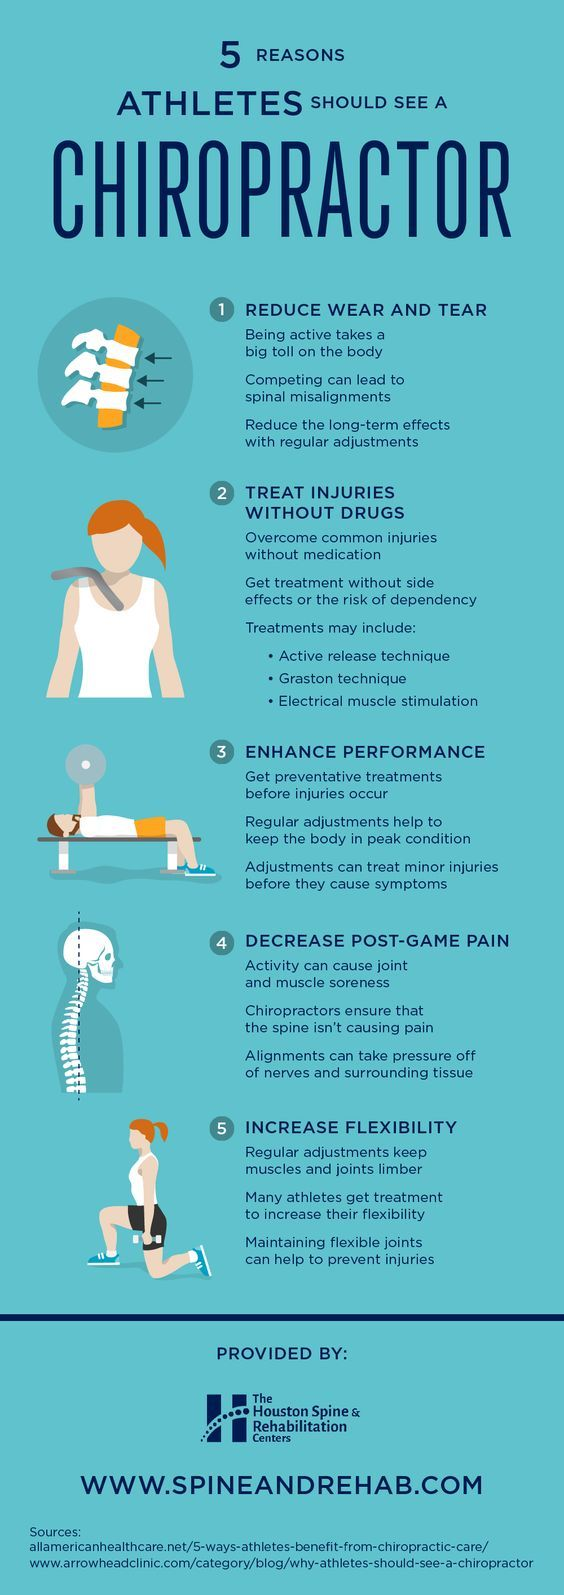 Why athletes she see a Chiropractor. Chiropractic clinic